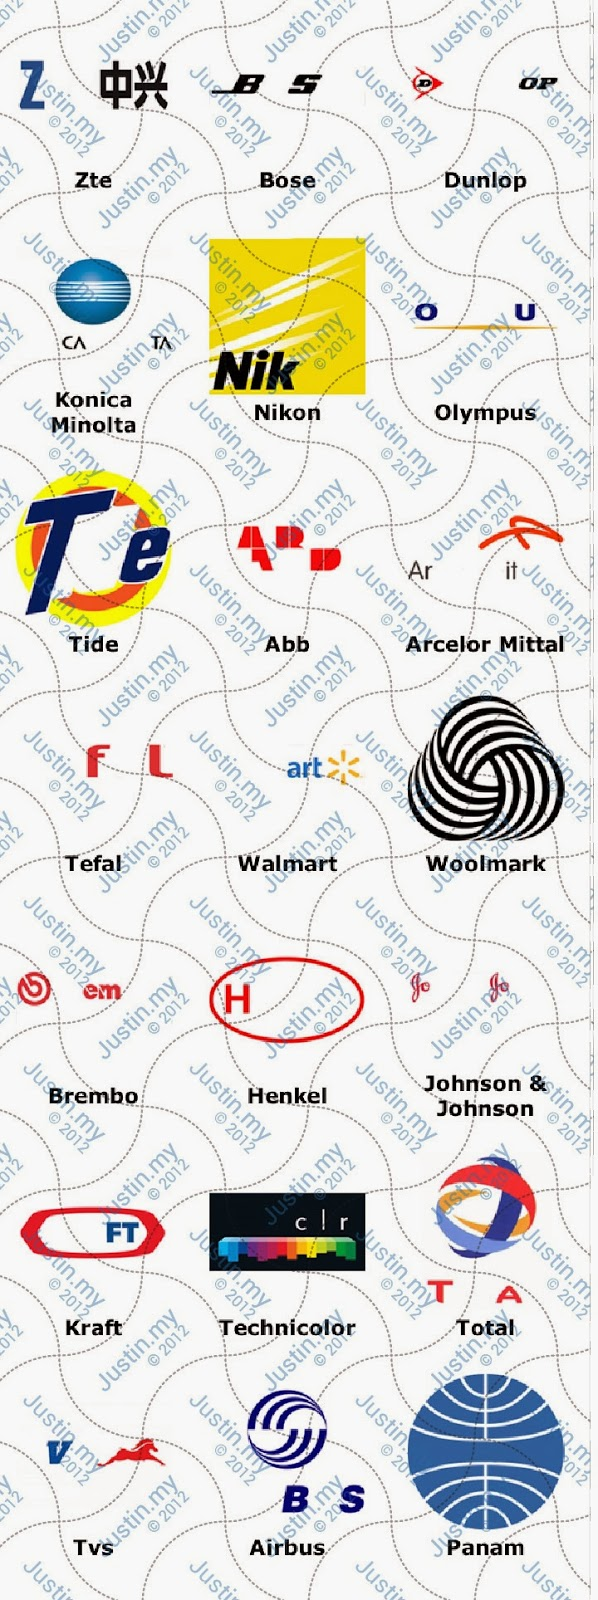 Industry - Ultimate Logo Quiz Answers  Industry - Ulti...